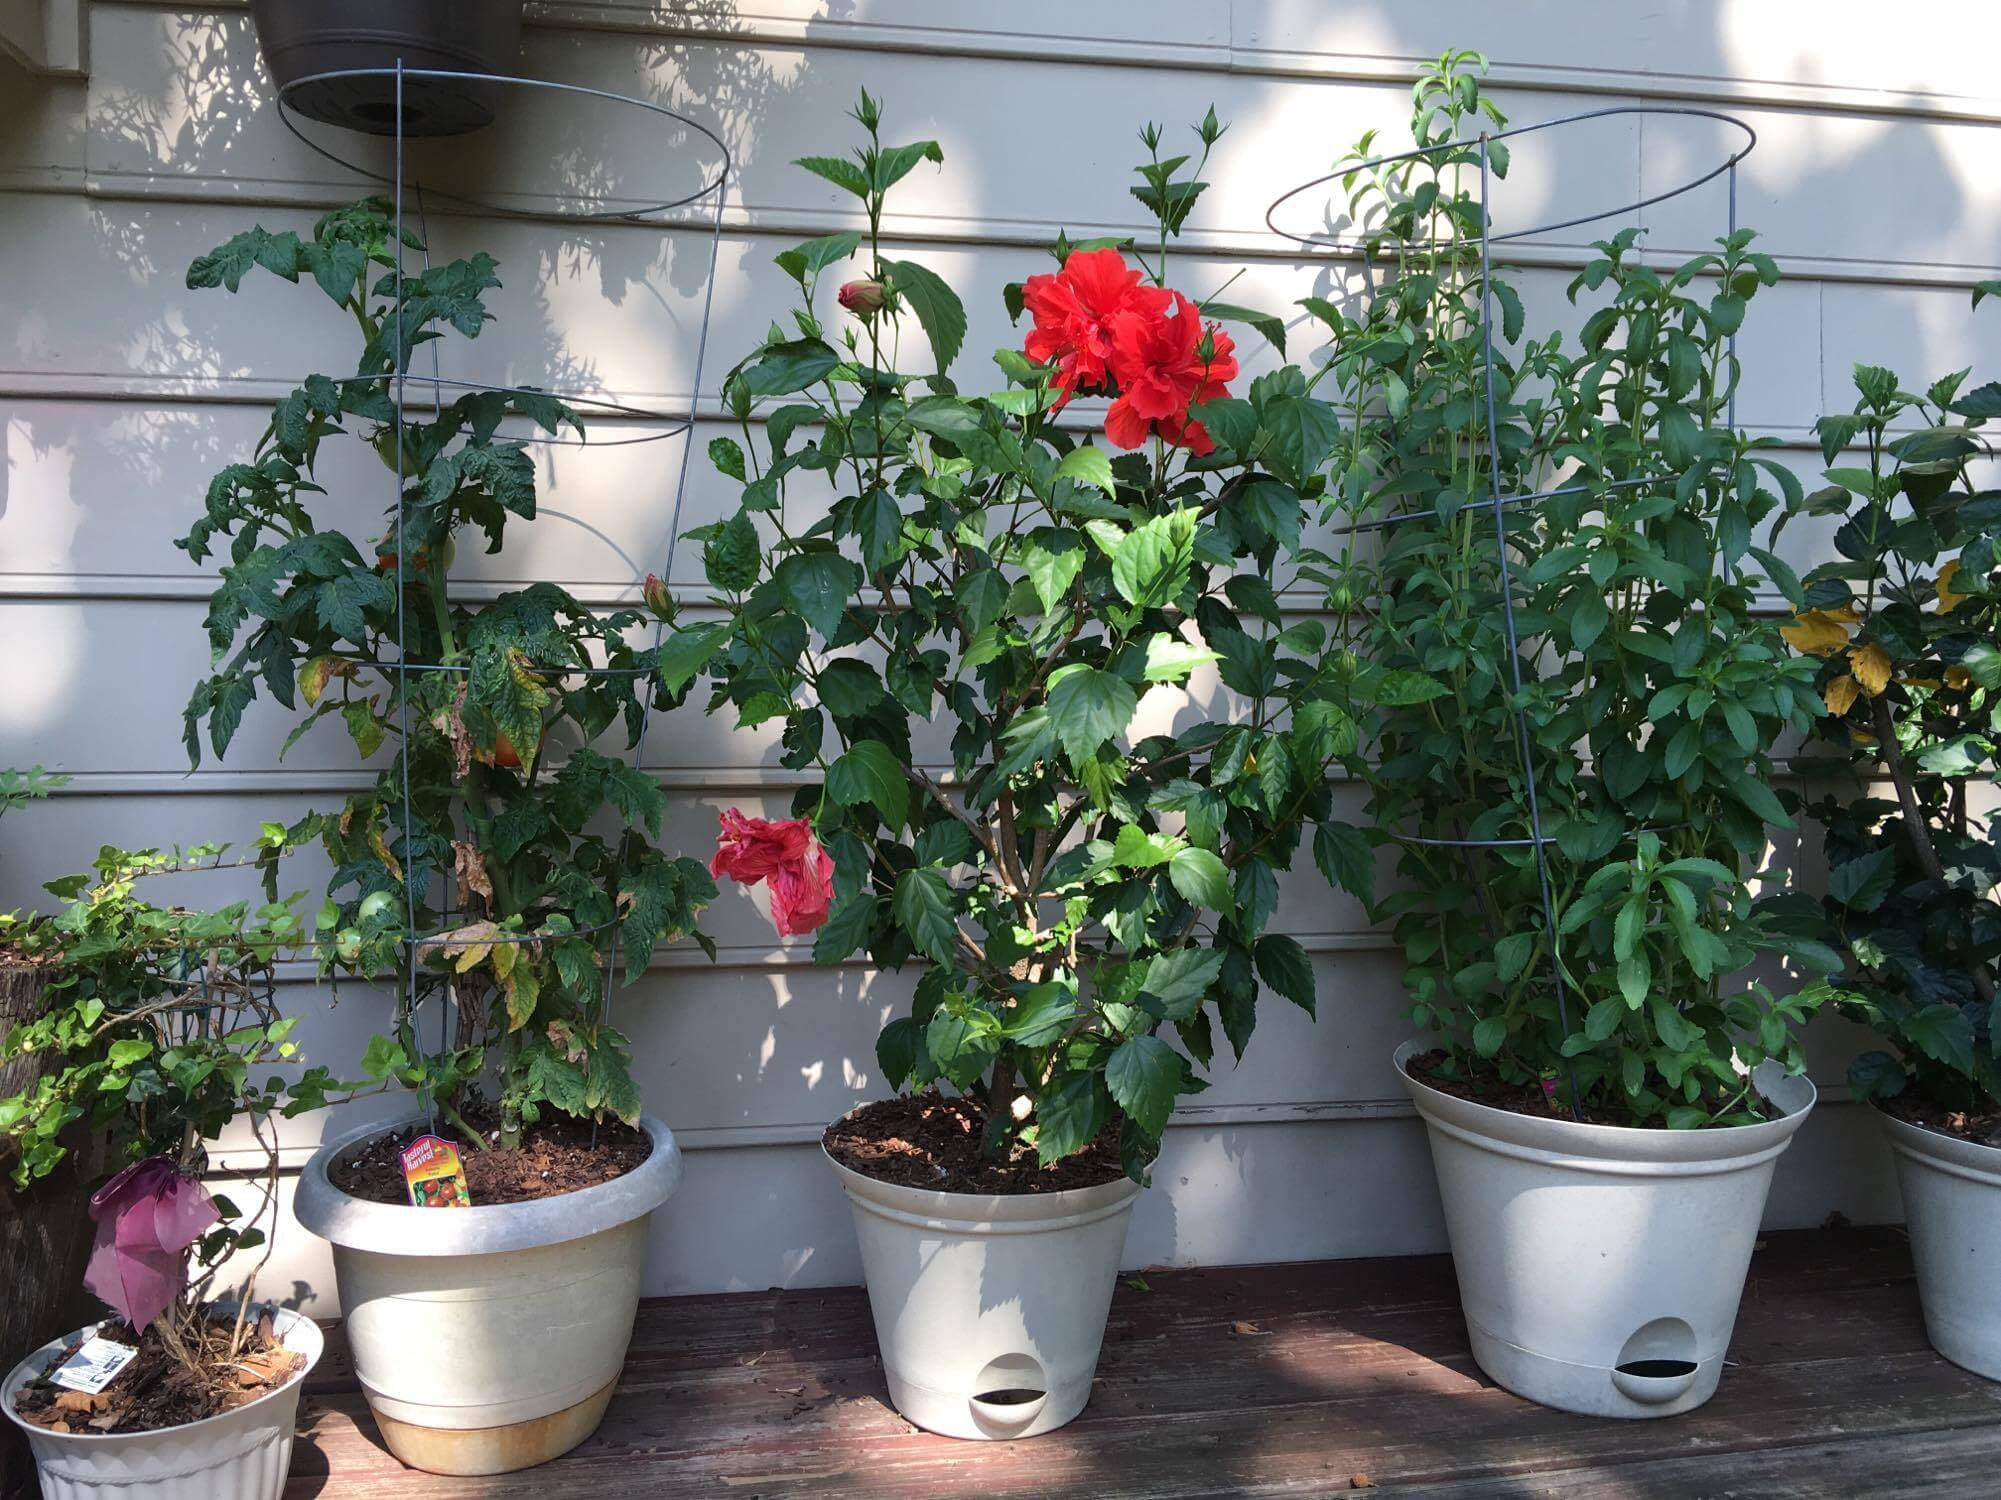 Left to Right - Tomoto, Red Hibiscus and Stevia